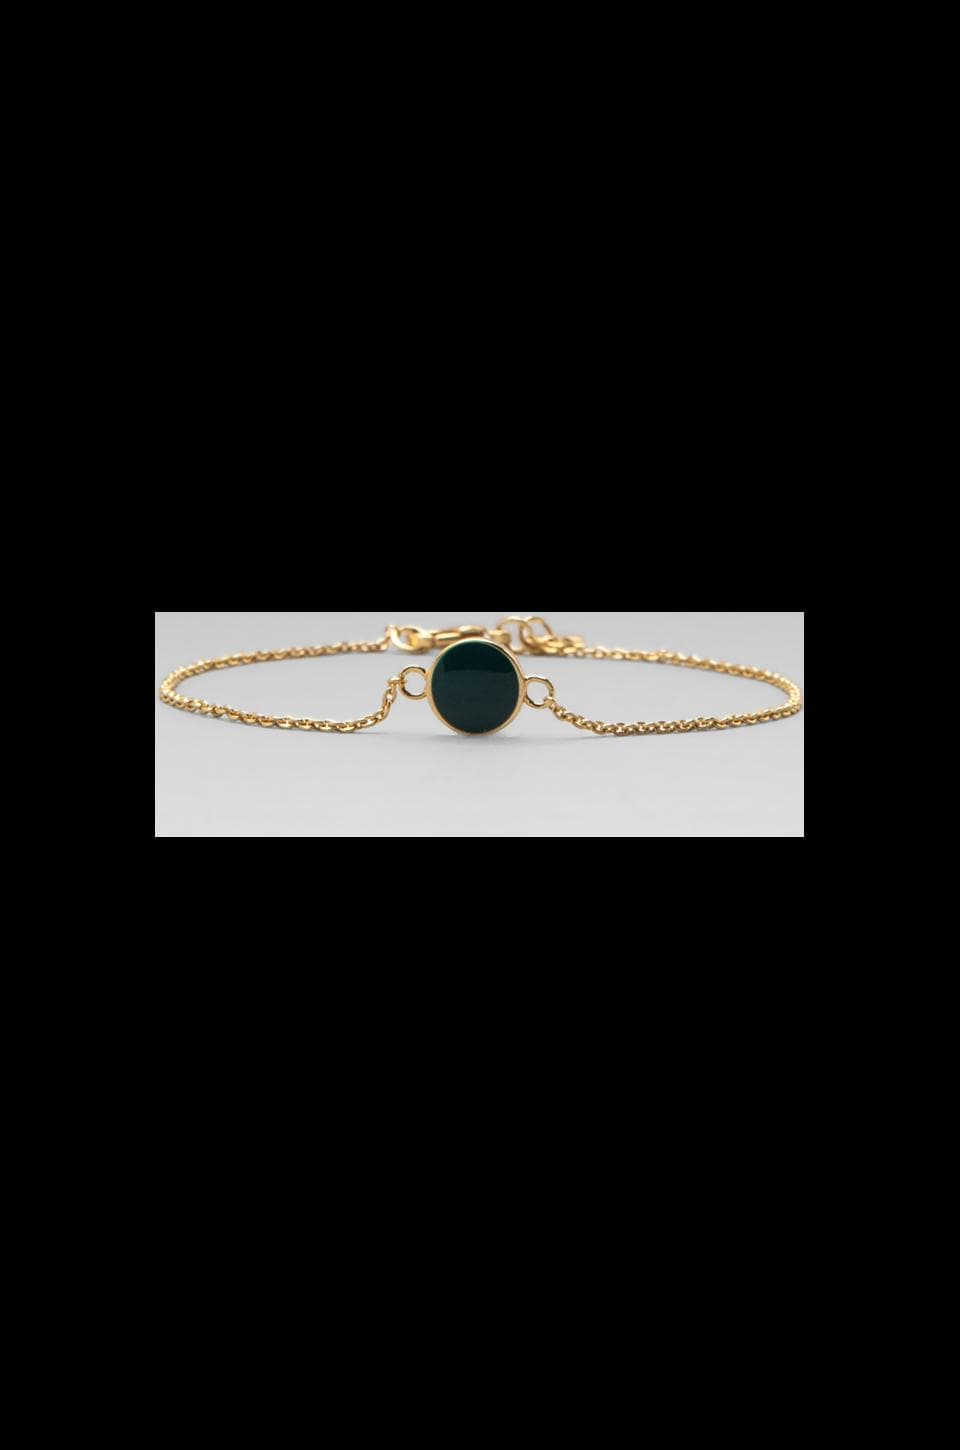 gorjana Sunset Disc Bracelet in Mare/Imperial Blue